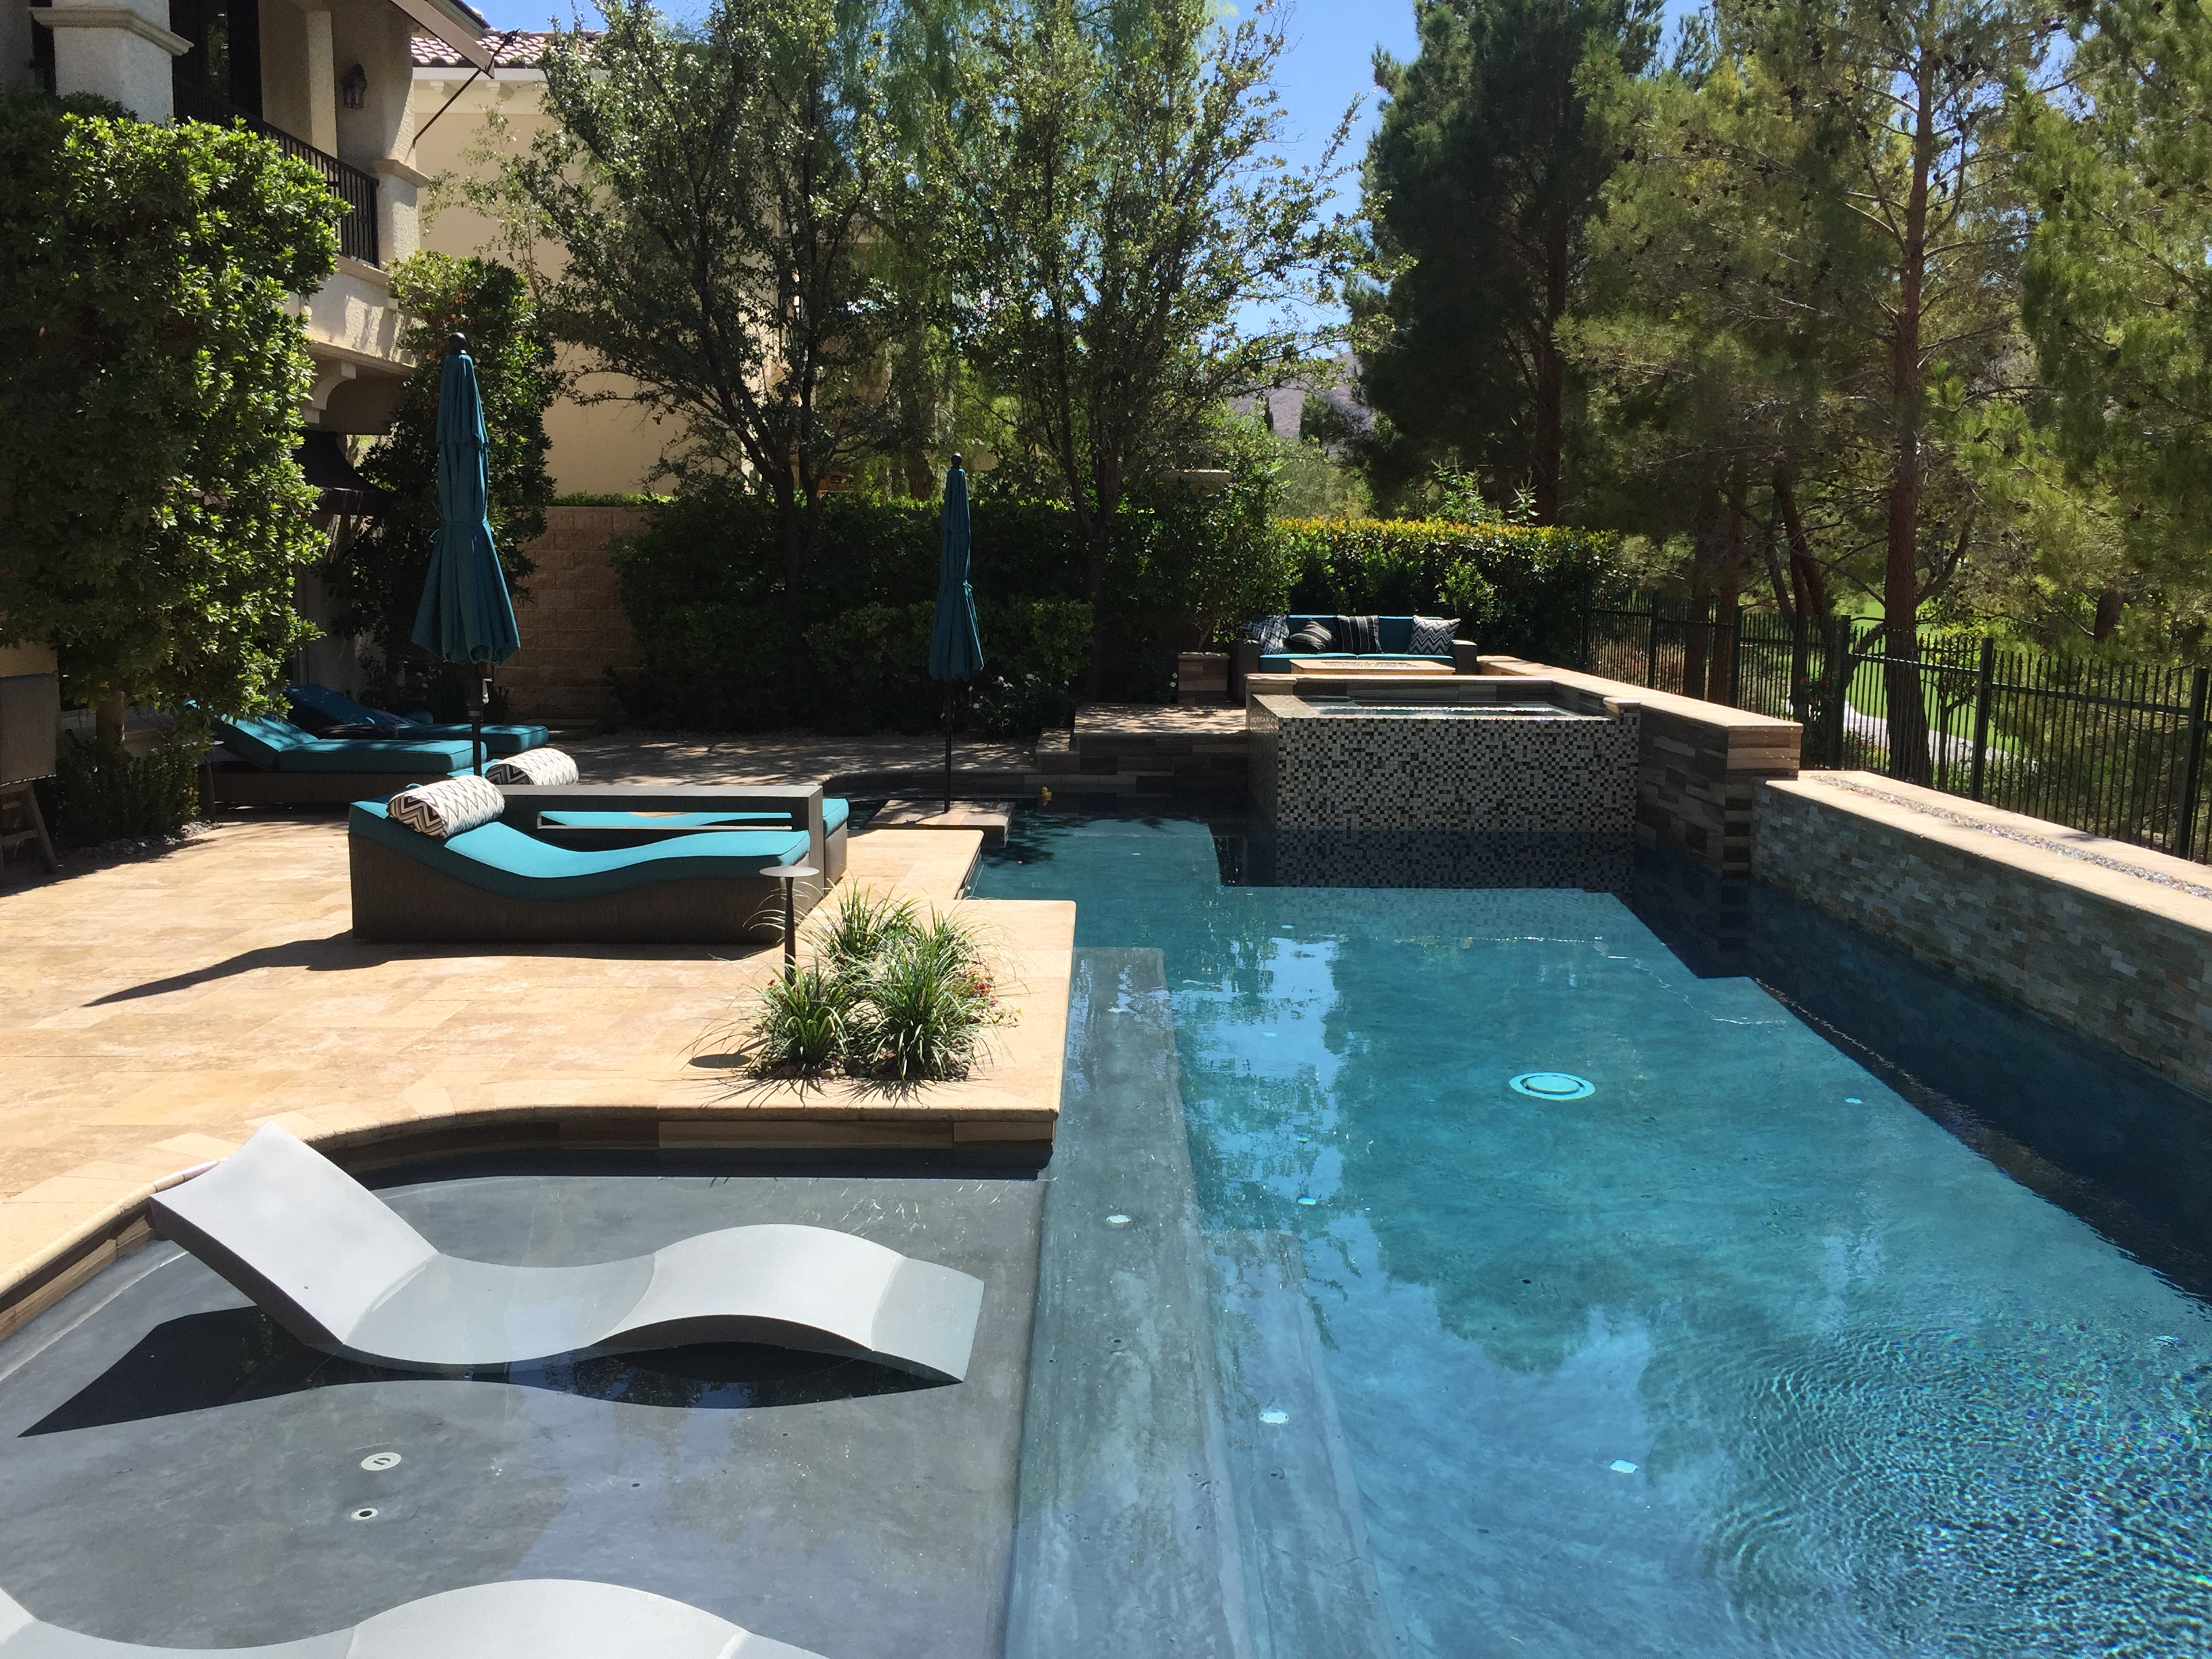 Las Vegas Backyard Landscaping Design Fair Backyard Resort  Las Vegas Pool Design Pool Contractor Pool . Review